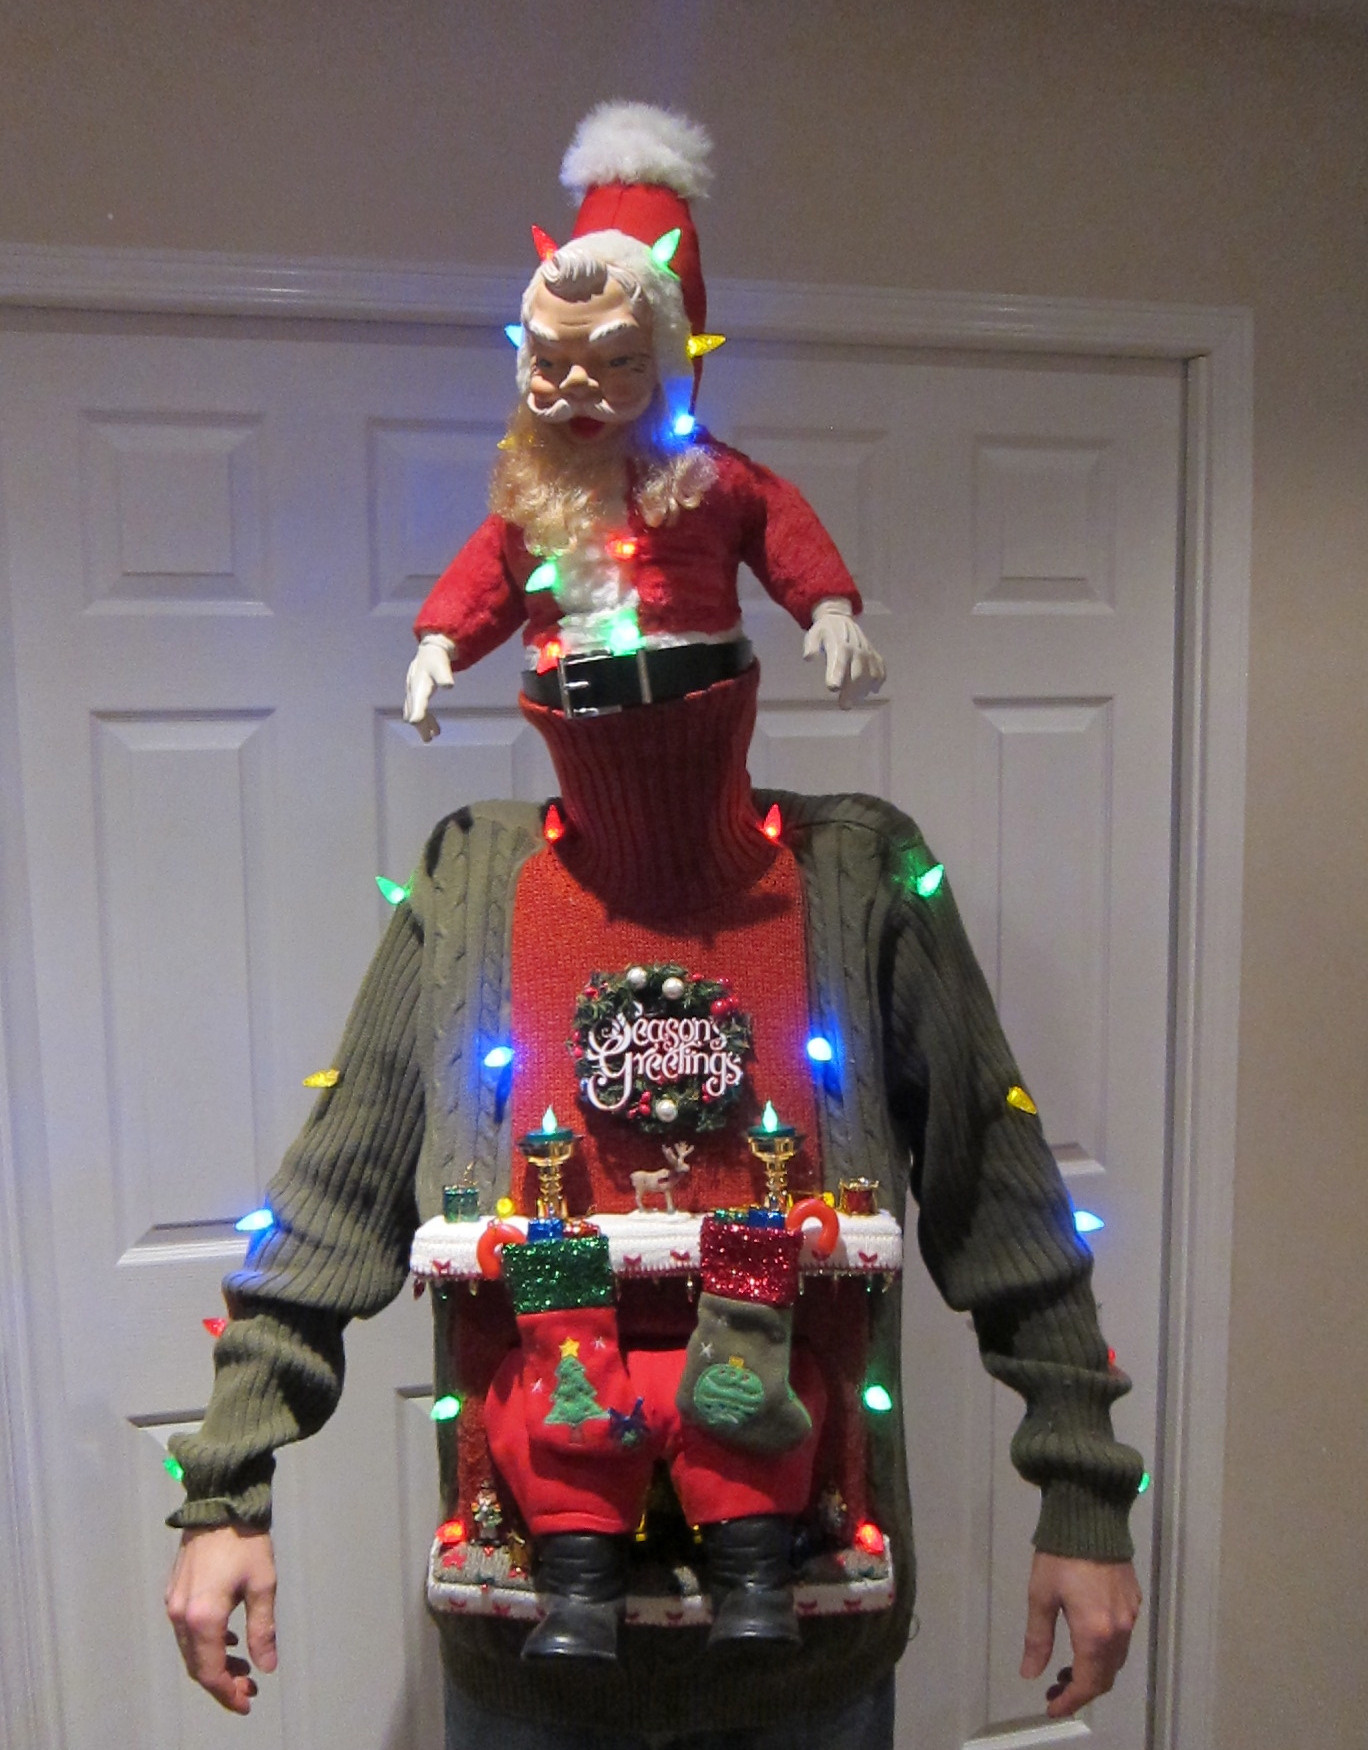 Best ideas about DIY Ugly Christmas Sweater . Save or Pin UGLY CHRISTMAS SWEATER DIY Stuck in the Chimney 2012 4 Now.